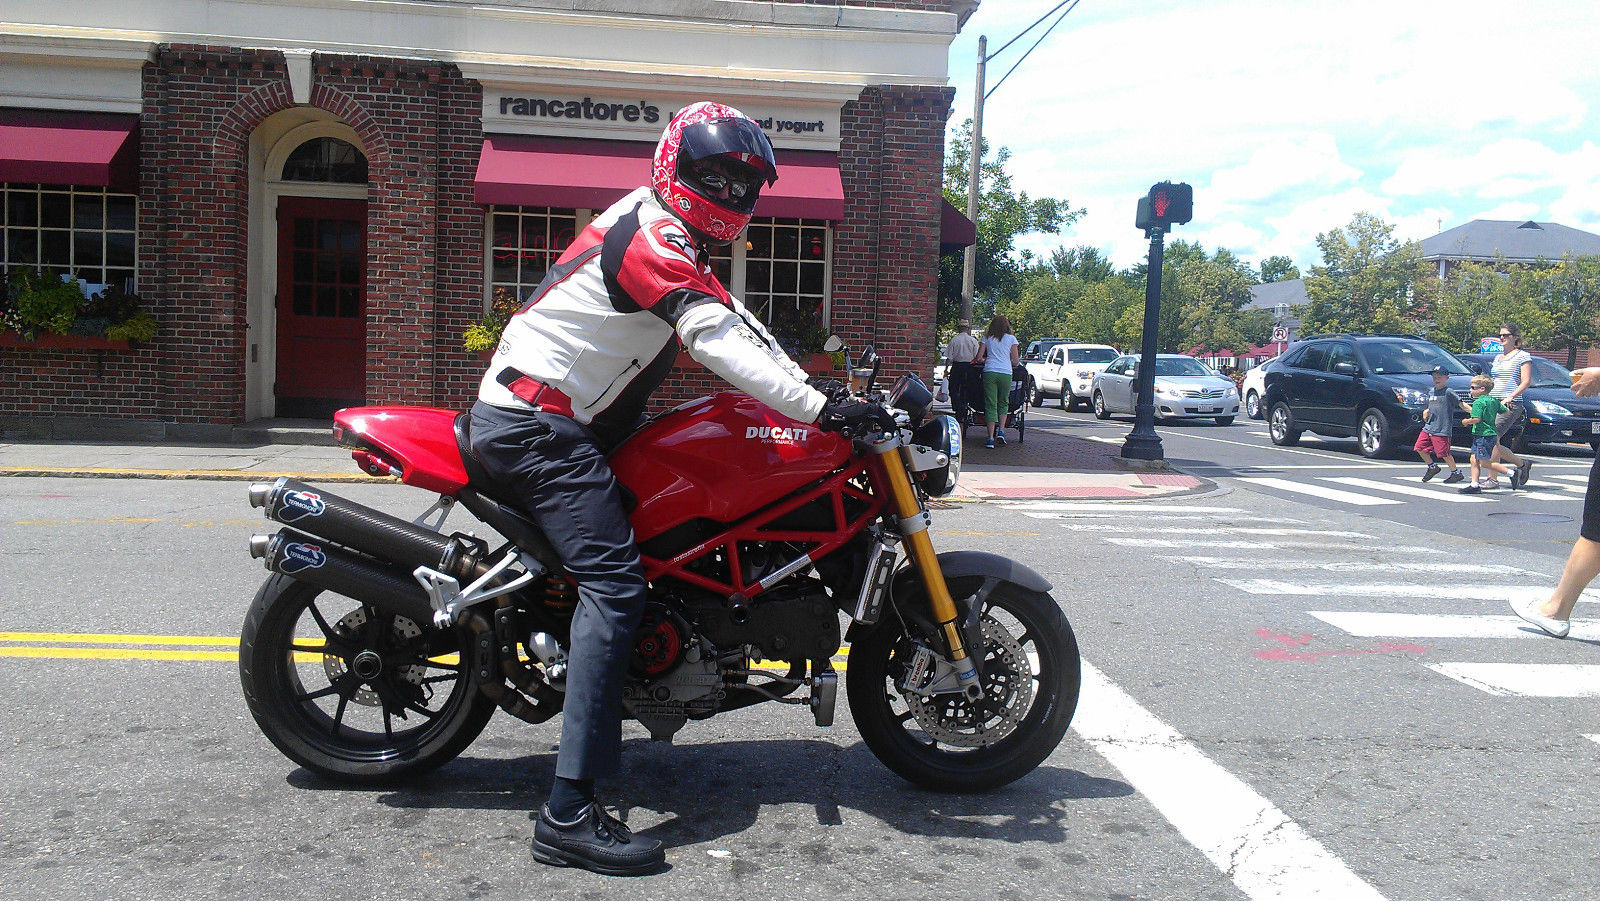 Ducati Monster S4rs Testastretta Right Side With Rider